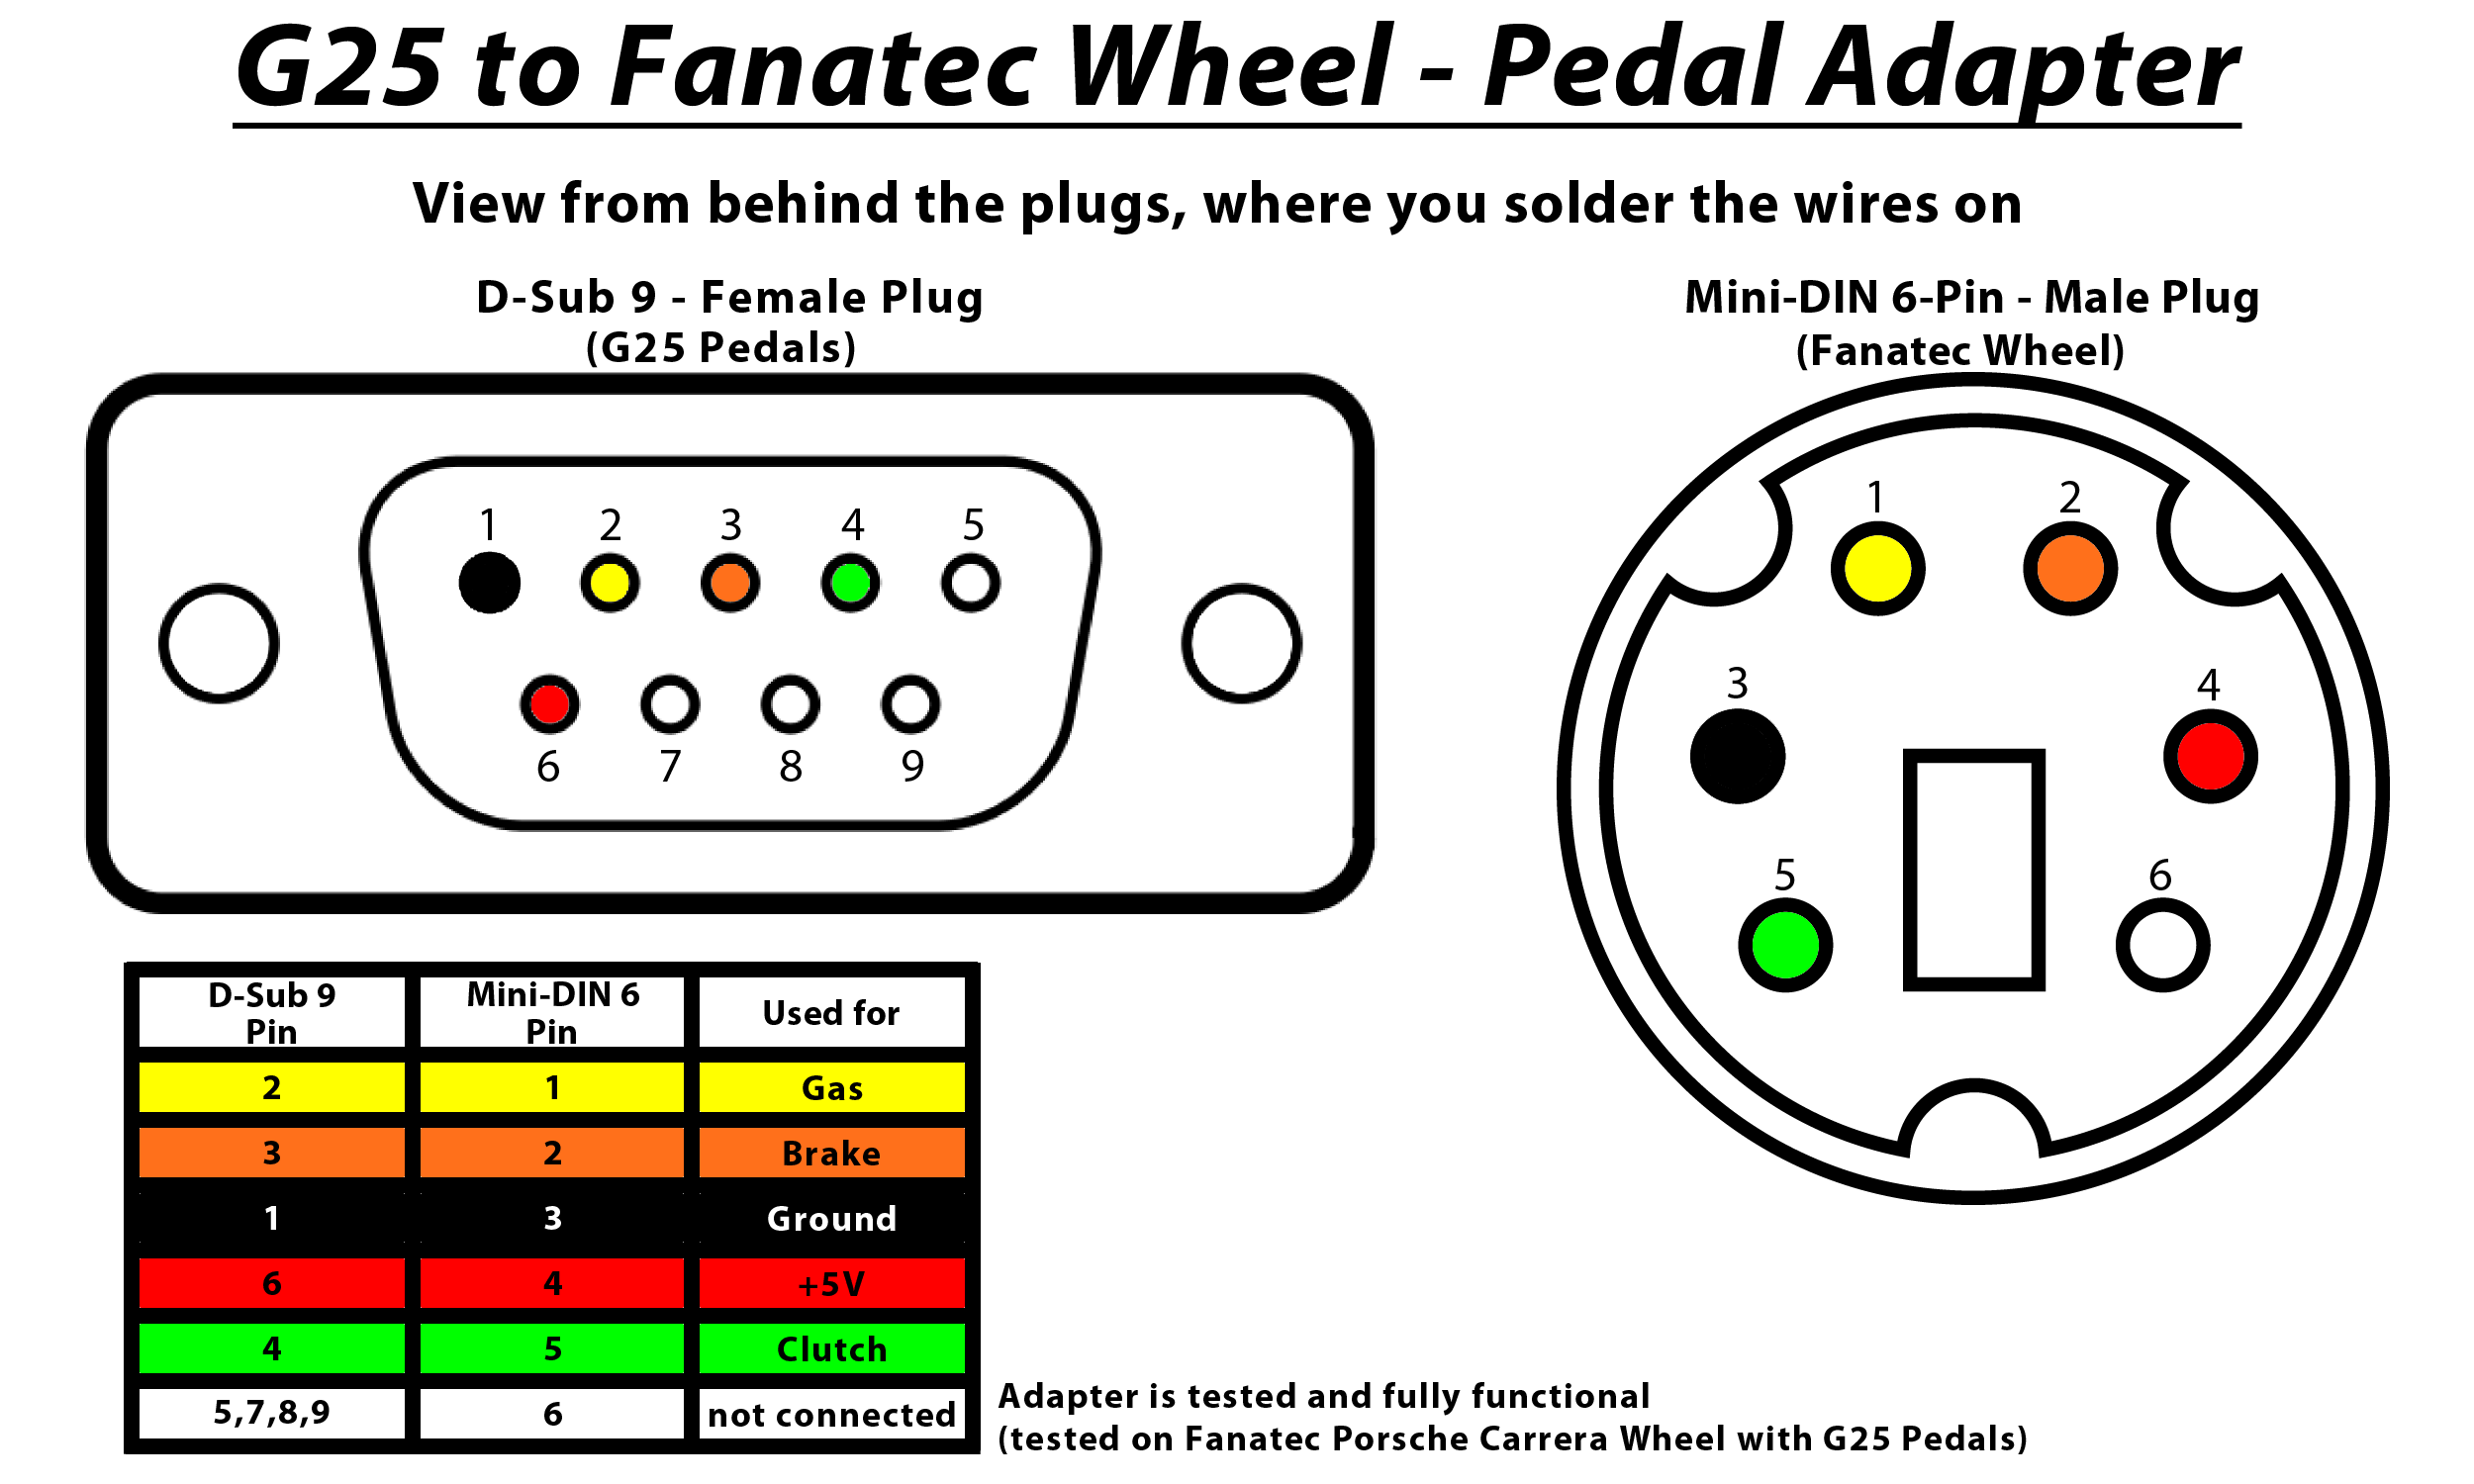 Fanatec    G25 Pedal Adapter Wiring Diagram - General Hardware Questions